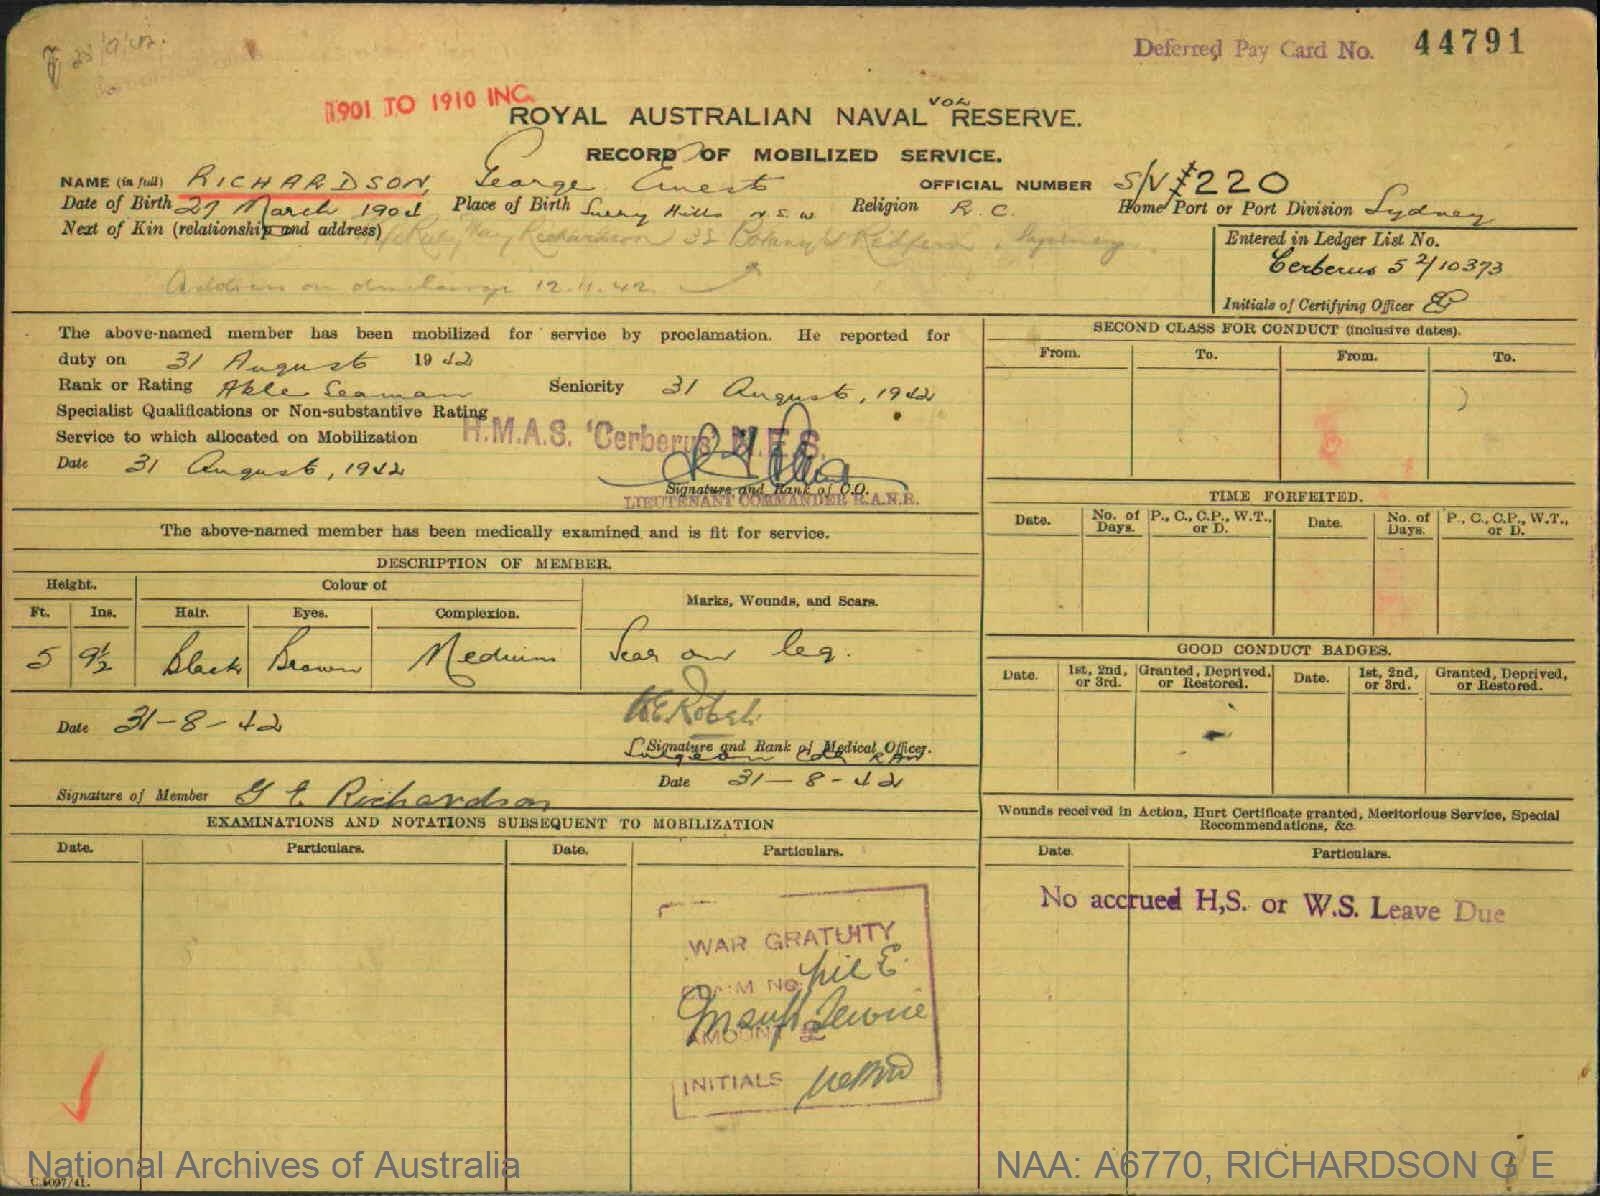 RICHARDSON GEORGE ERNEST : Service Number - S/V220 : Date of birth - 27 Mar 1904 : Place of birth - SURRY HILLS NSW : Place of enlistment - SYDNEY NSW : Next of Kin - RICHARDSON RUBY